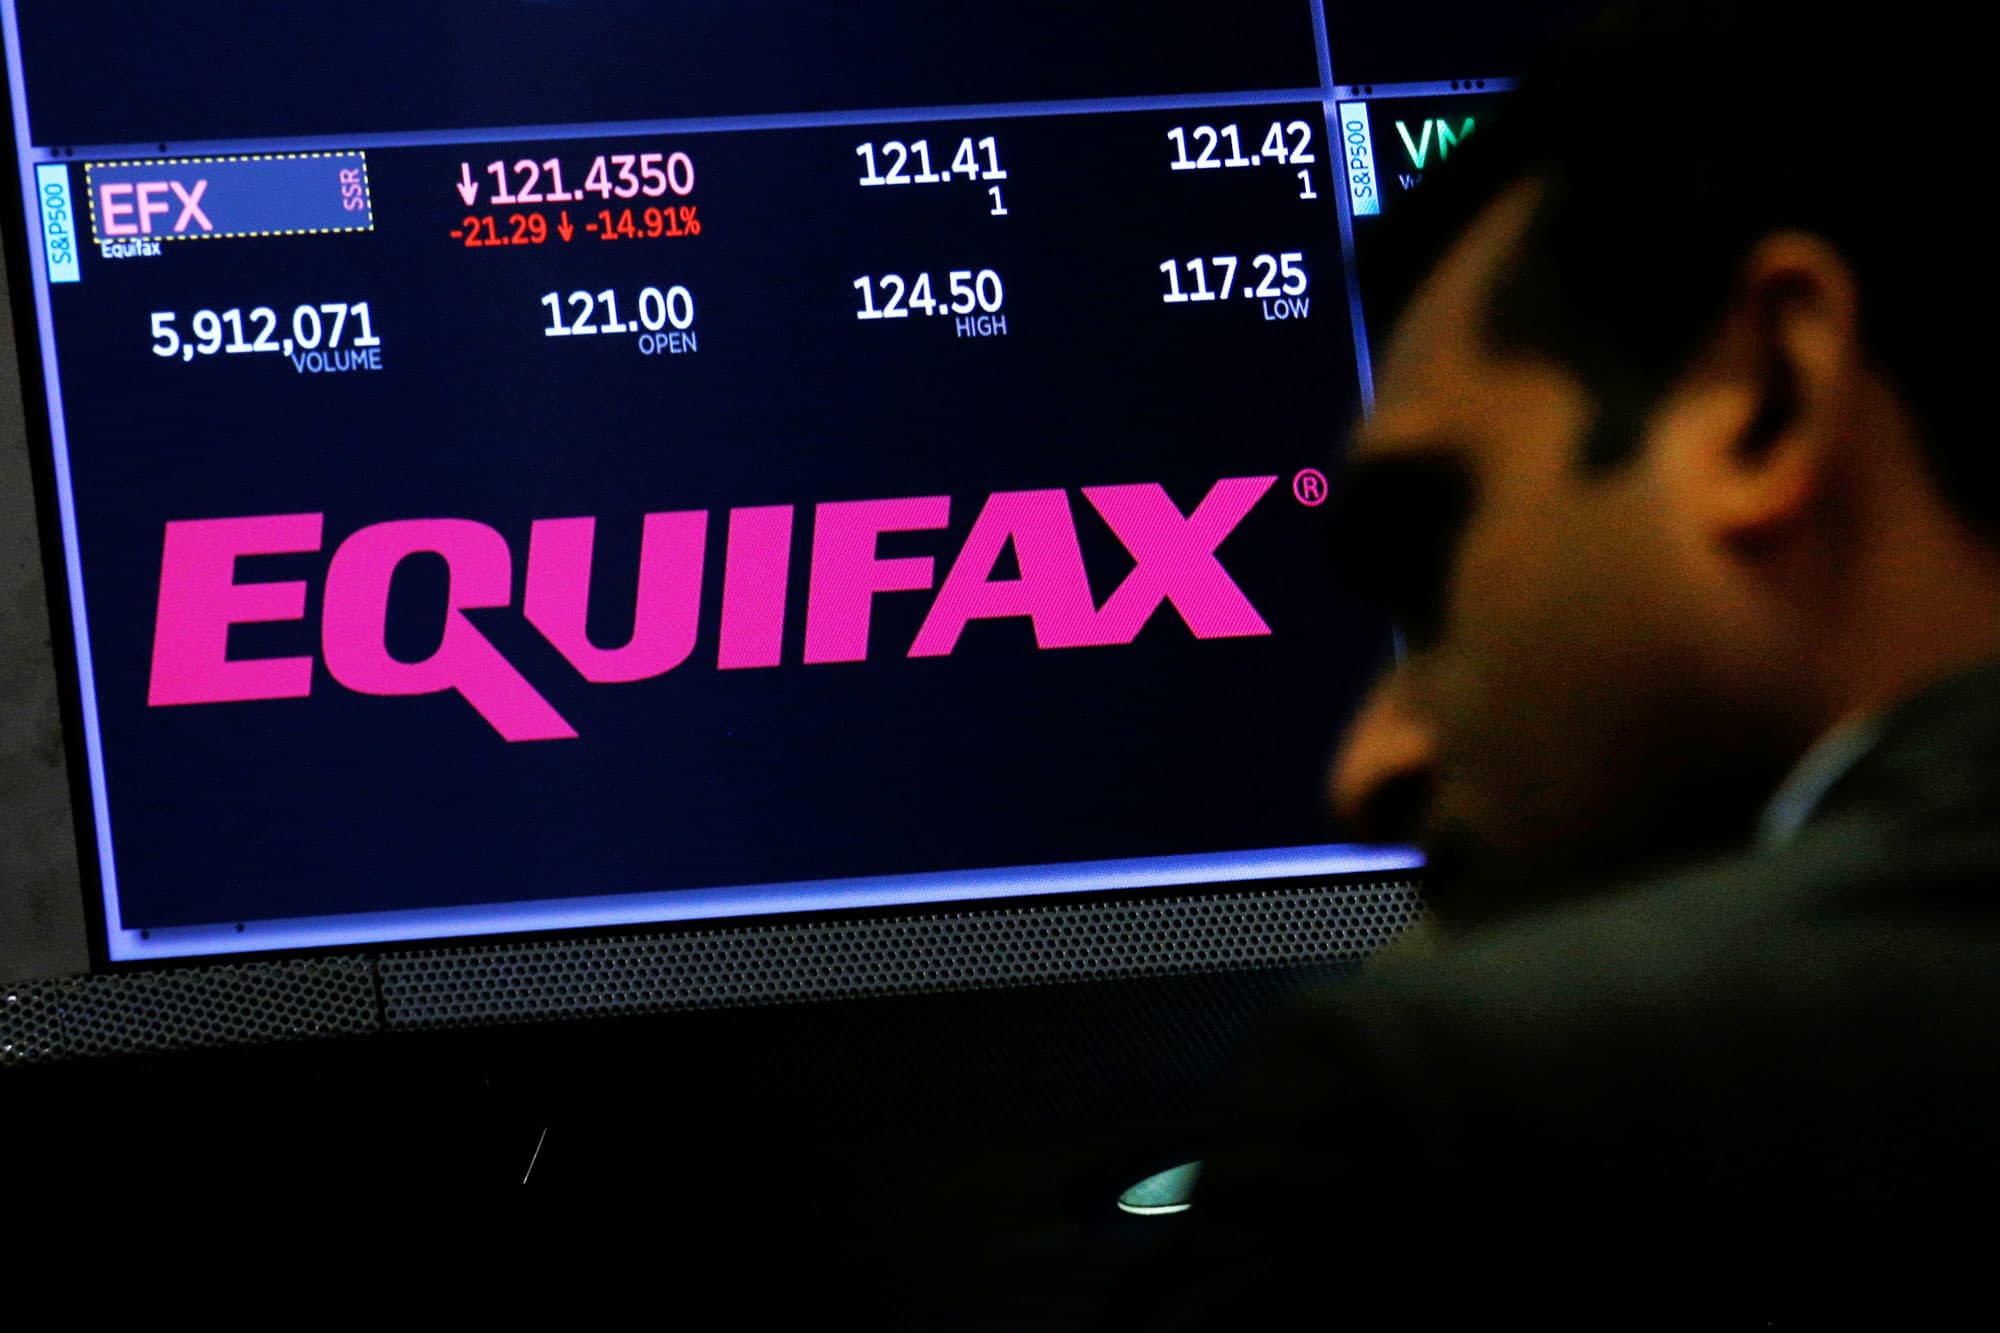 Equifax trading information and the company logo are displayed on a screen where the stock is traded on the floor of the New York Stock Exchange in New York.